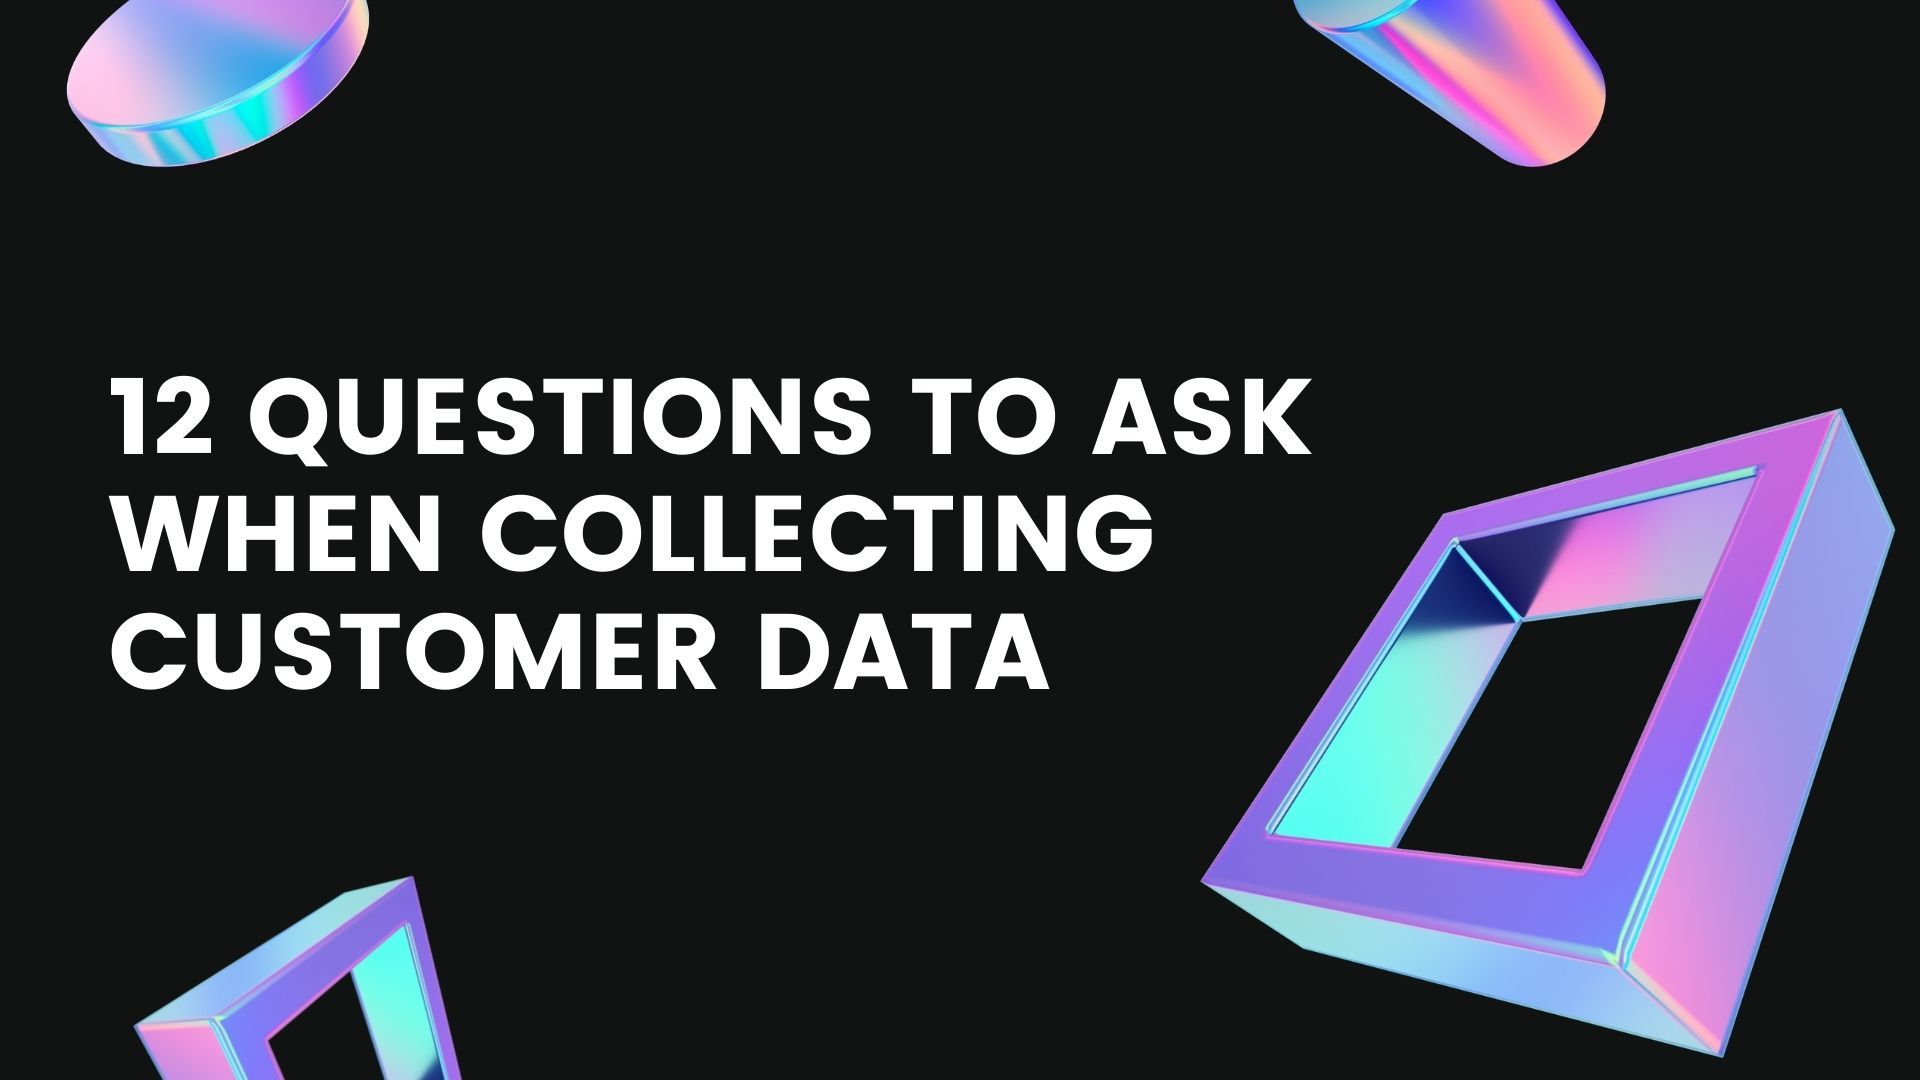 12 questions to ask when collecting customer data